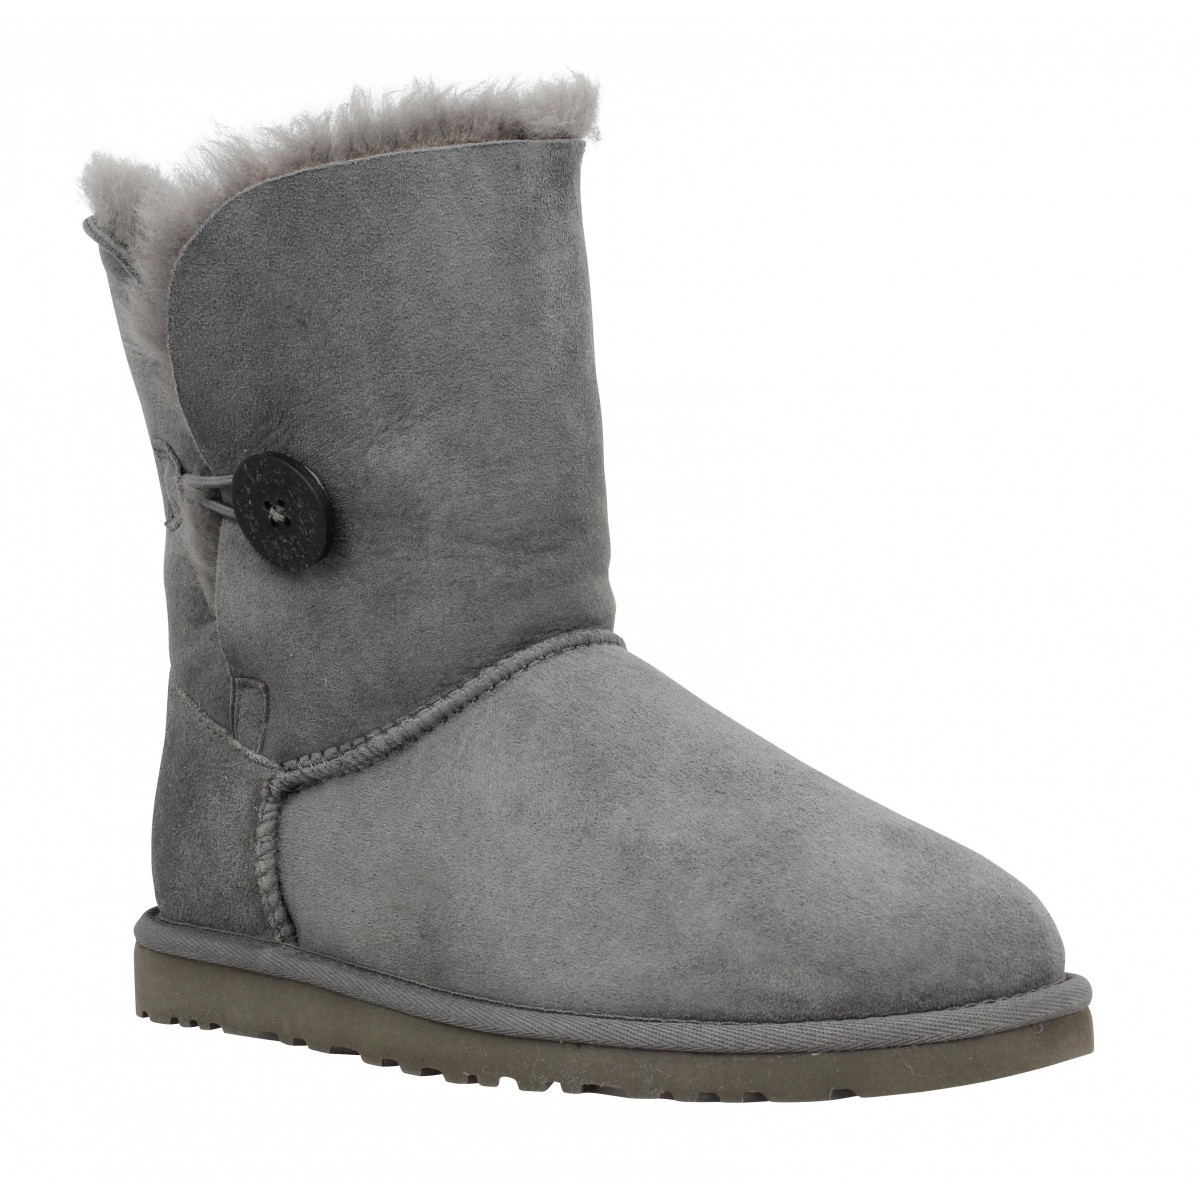 Bottines UGG AUSTRALIA Bailey Button velours Femme Gris